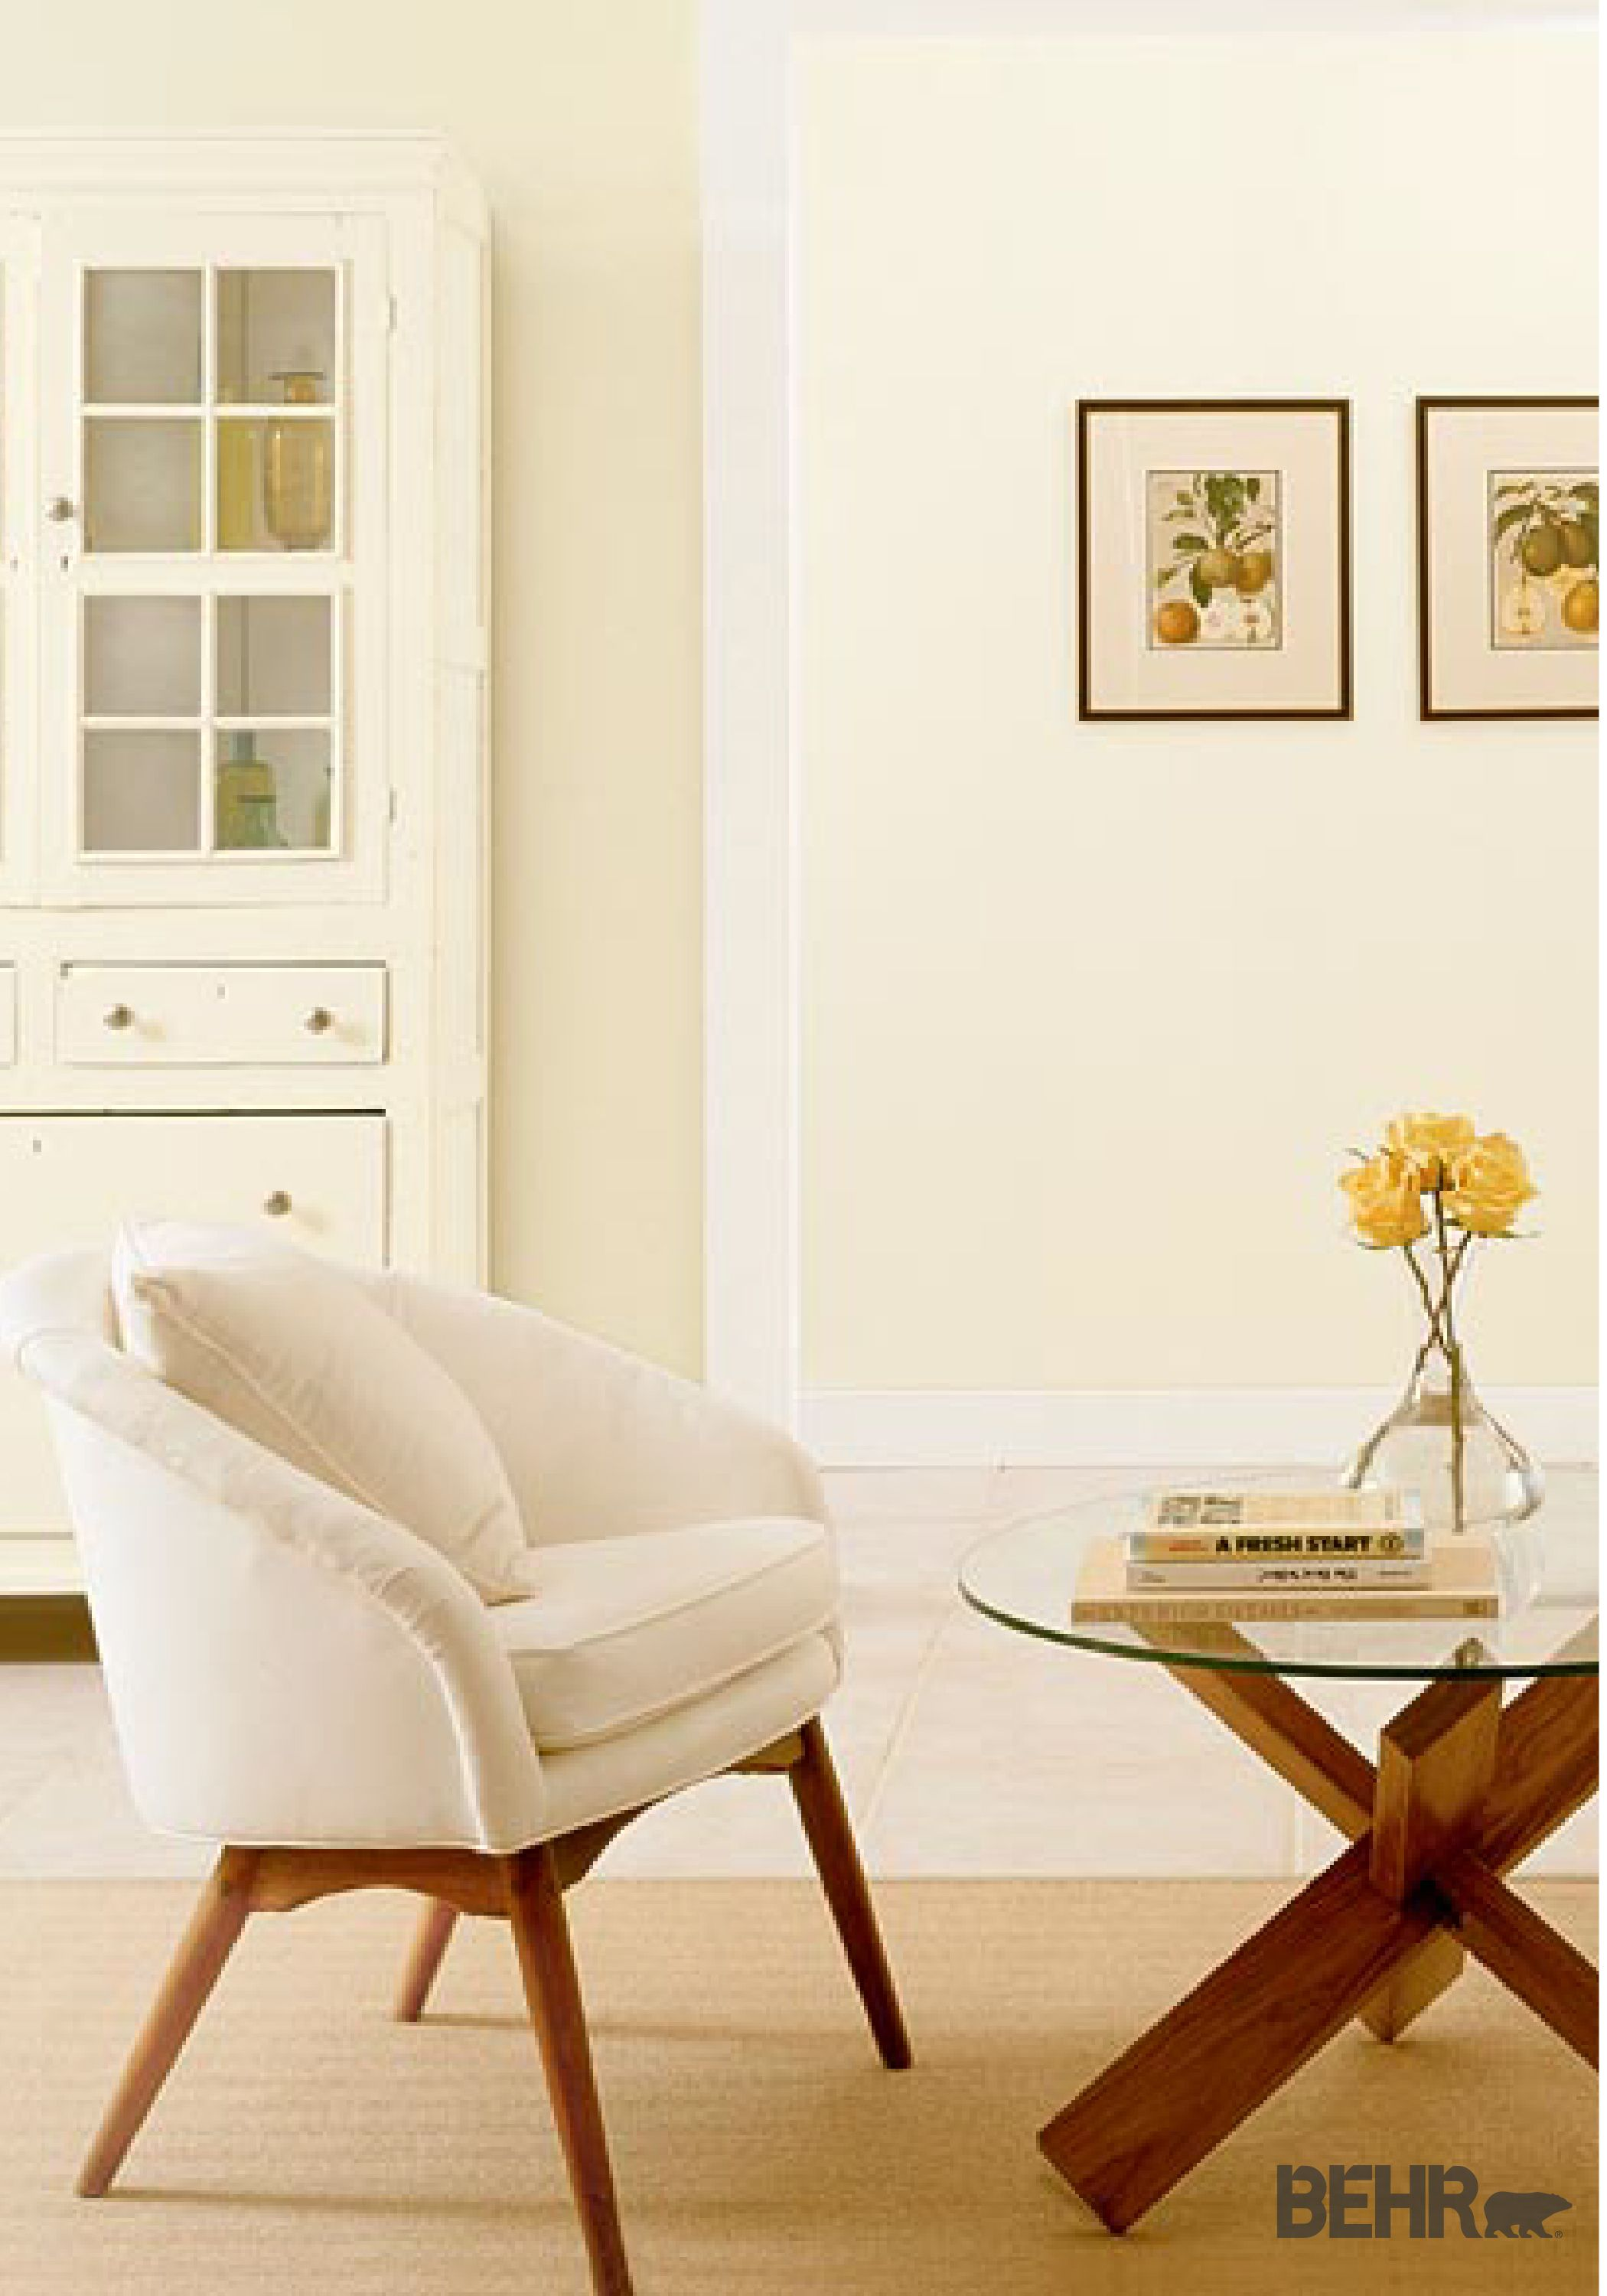 Yellow Painted Room Design Inspiration And Project Idea Gallery